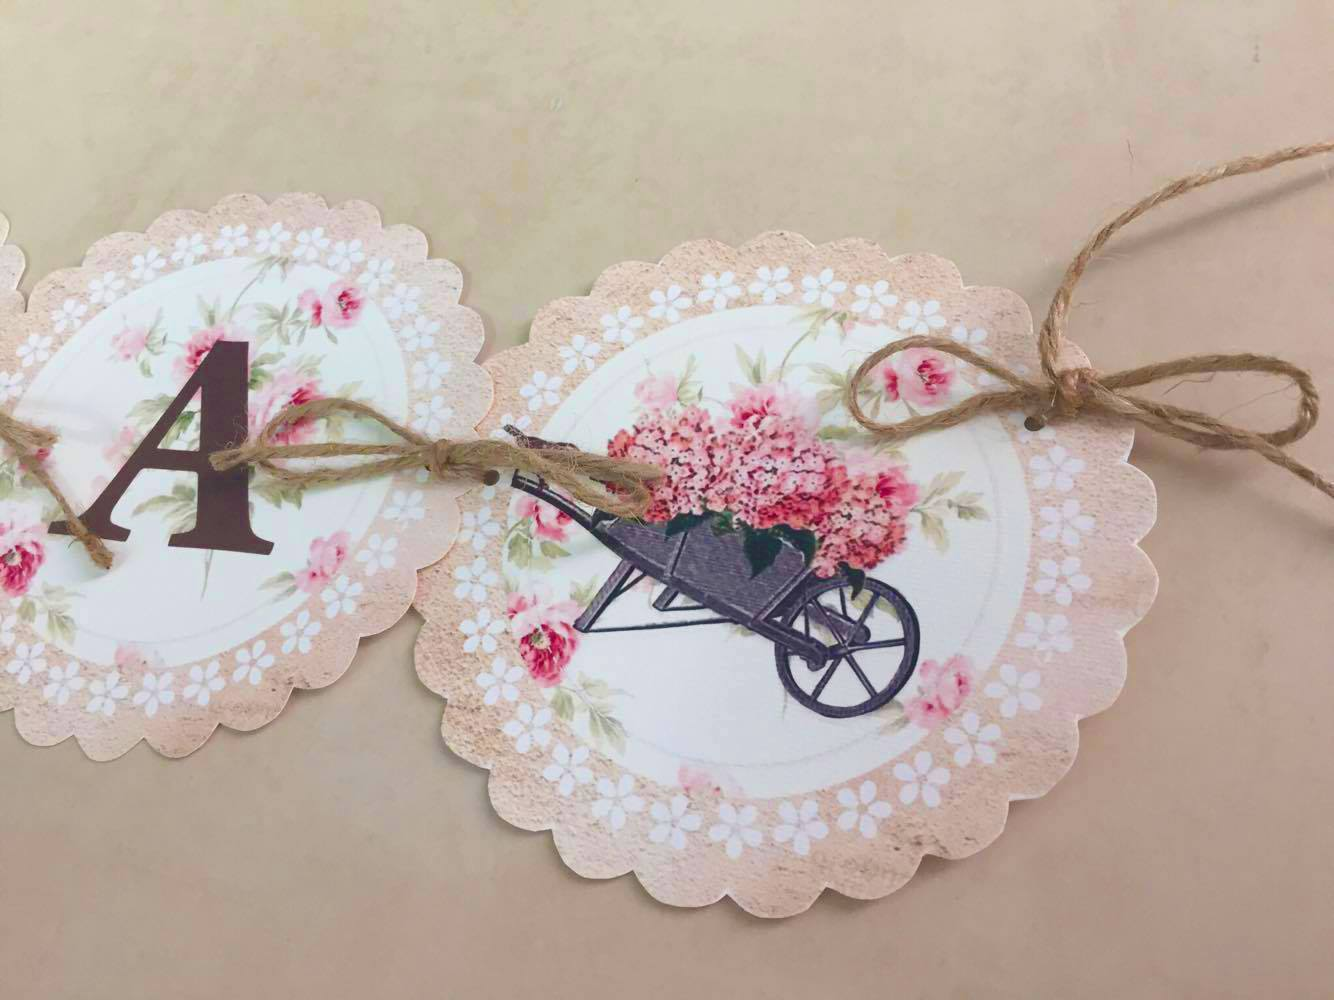 Baptism Christening candy bar vintage romantic name garland table floral boho chic pastel tulle flowers wish sweets donuts backet pot sewing machine rocks cellar blackboard frame decoration bow crates wooden lantern book pen handmade lace